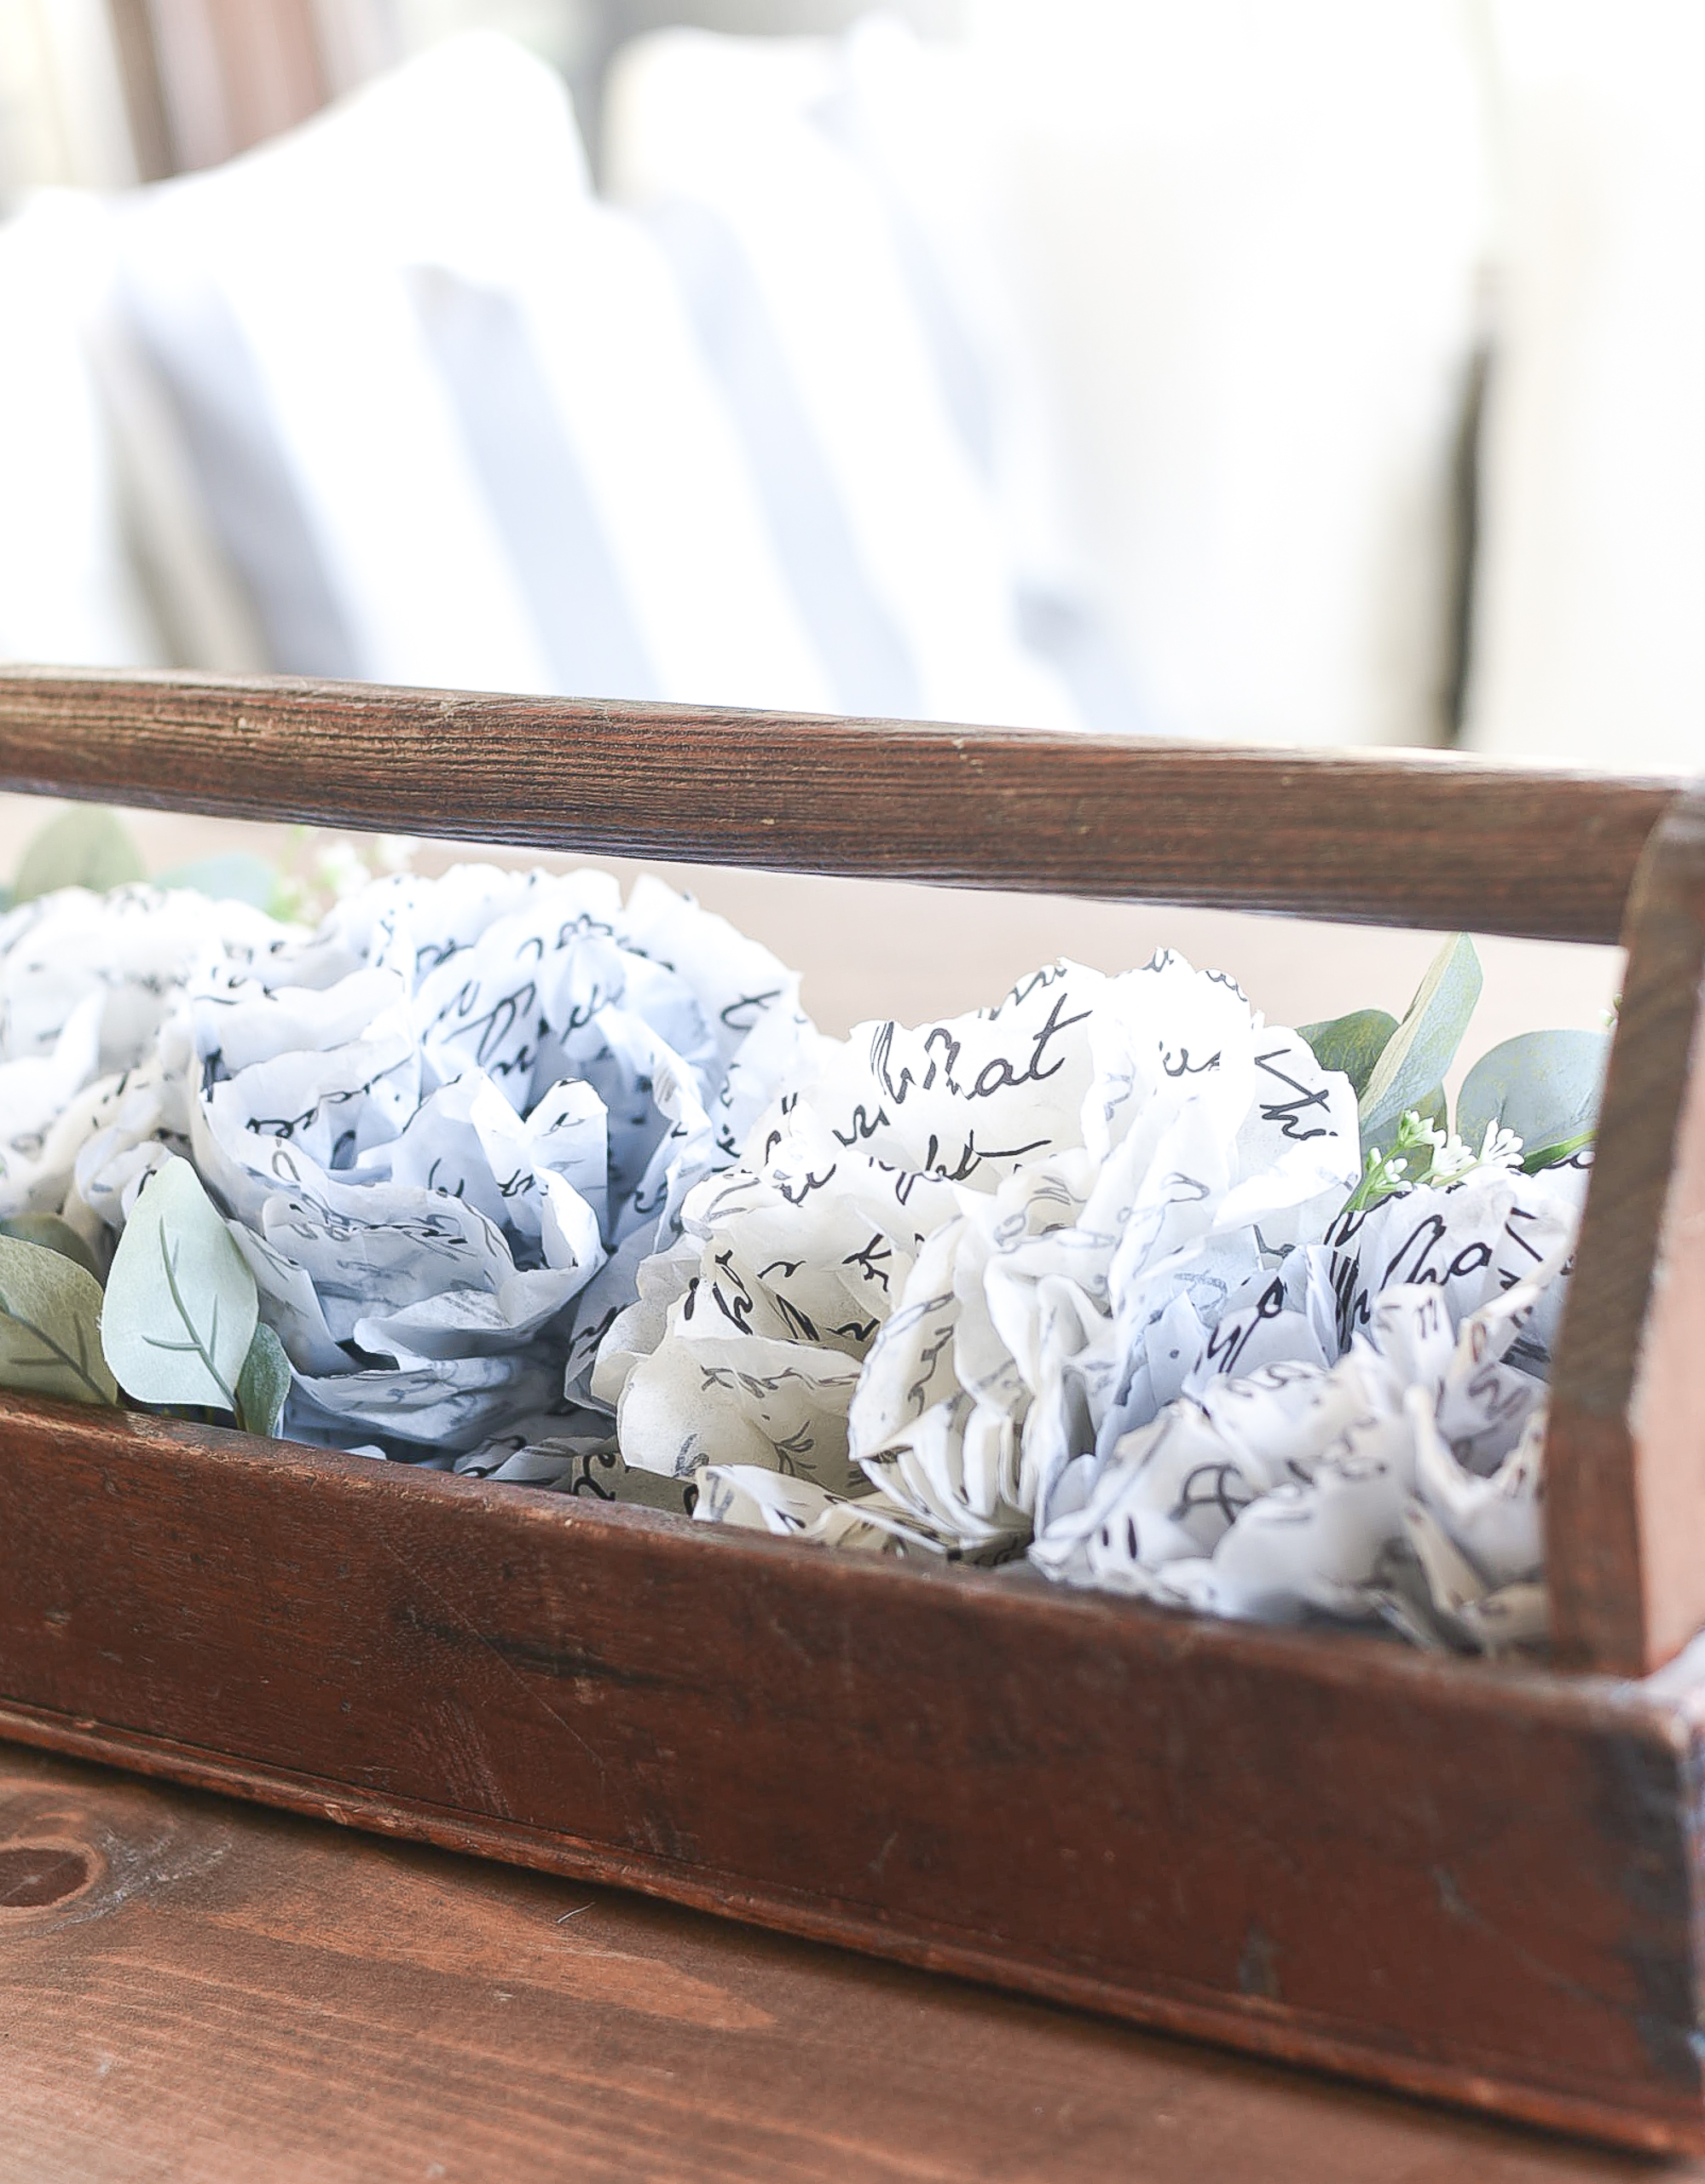 Tissue Paper Flowers DIY - How to Make Tissue Paper Flowers - Script Tissue Paper in Gray, Off White